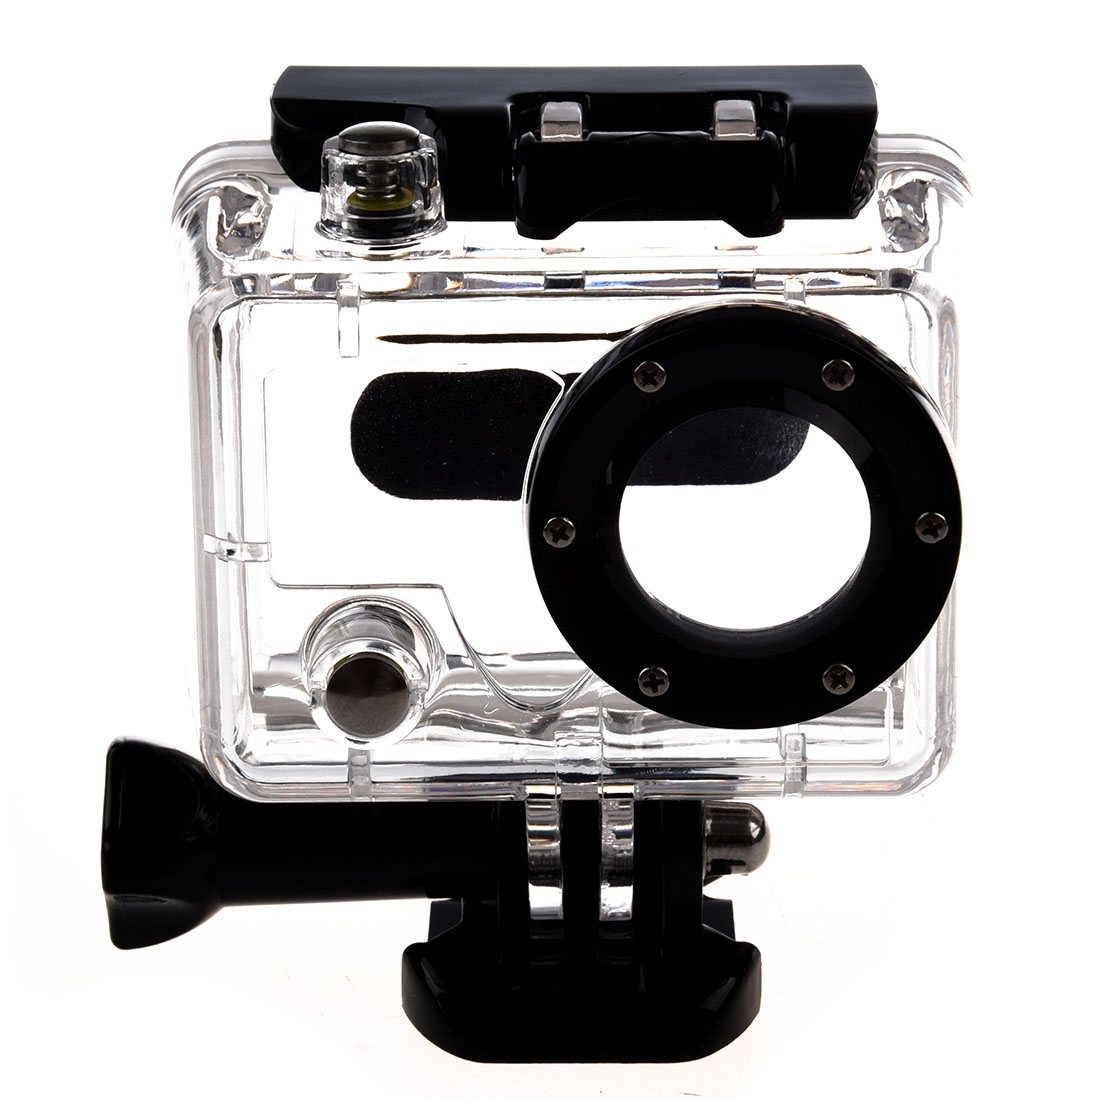 Waterproof Dive Housing Case Skeleton With Lens For Gopro Hero 2 Camera